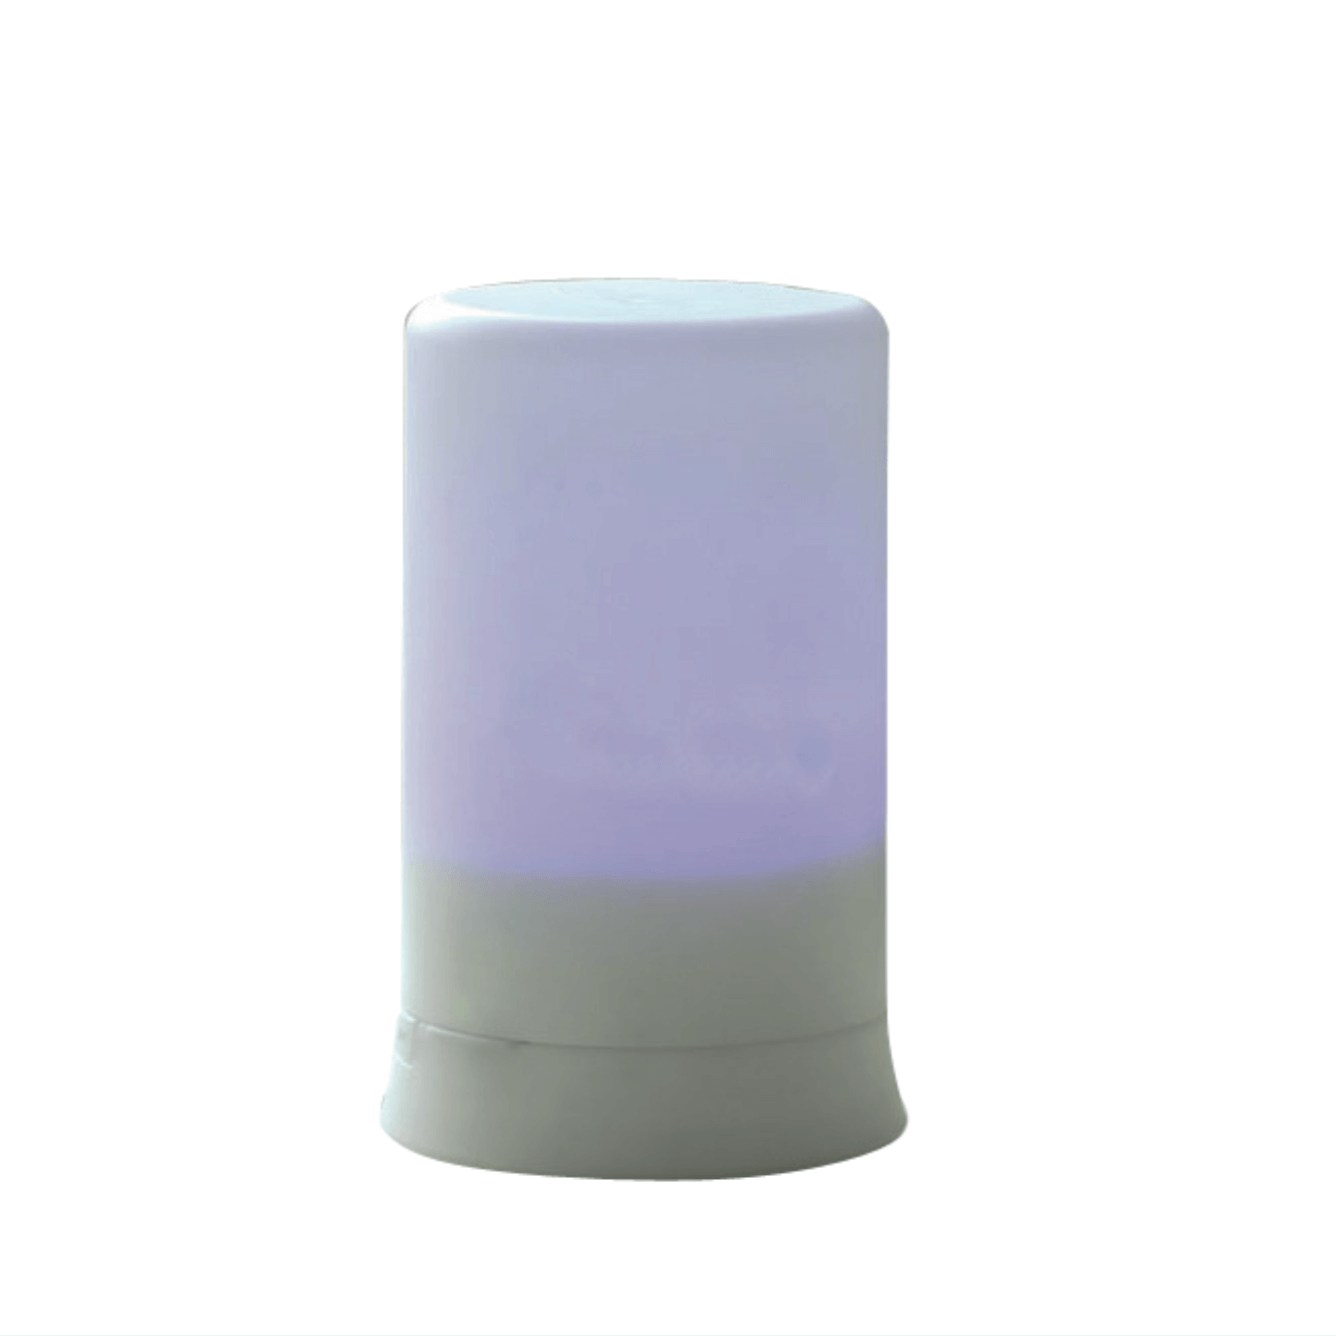 Eve Taylor Ultrasonic Diffuser